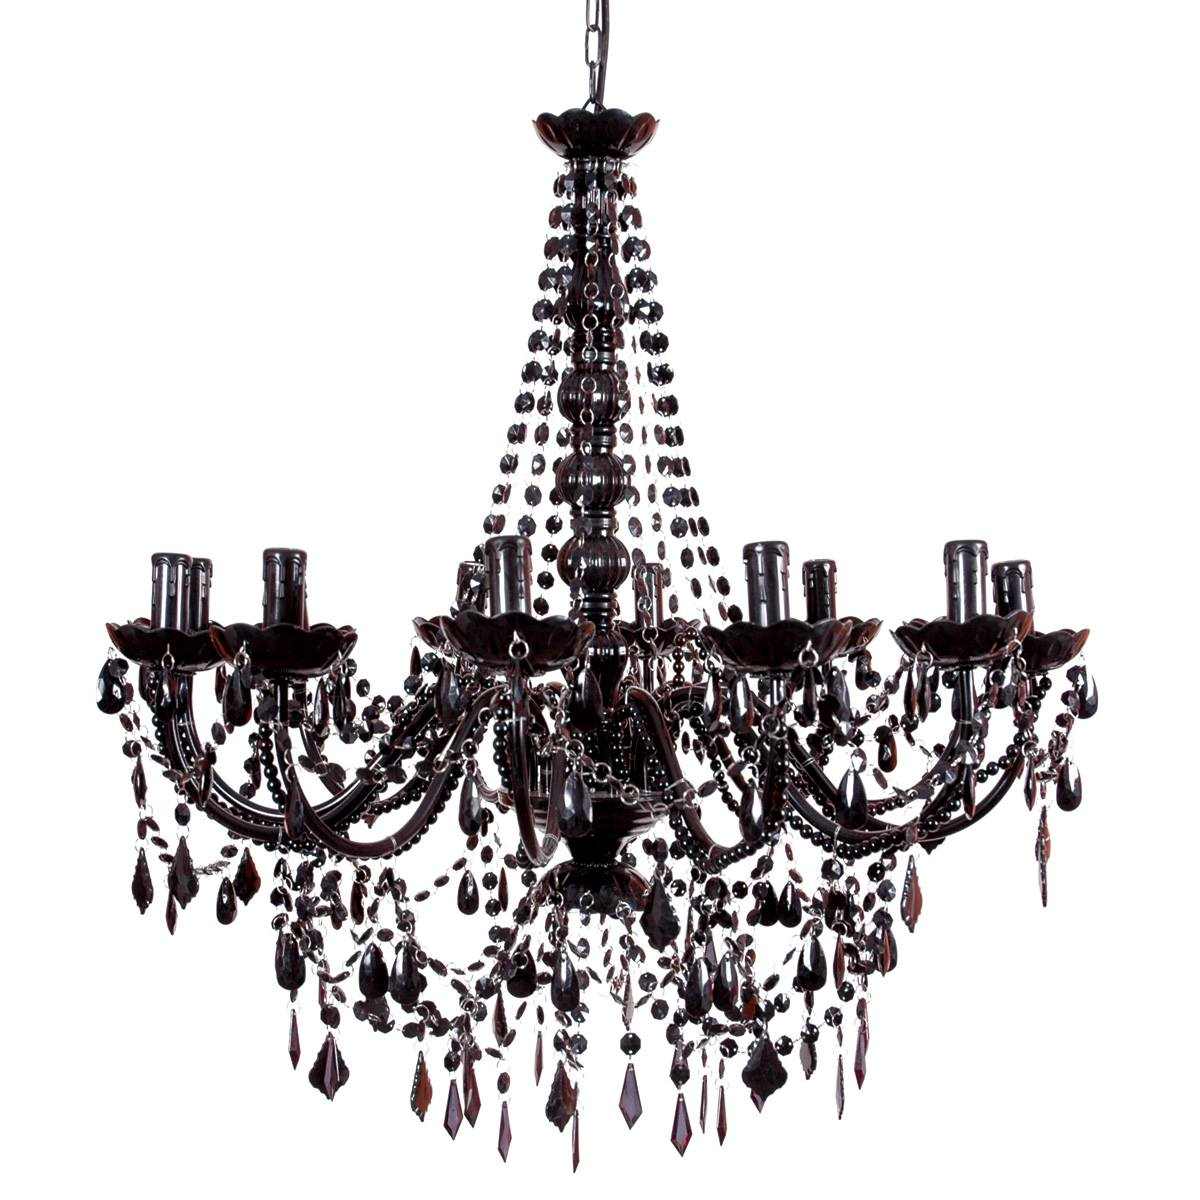 Gothic Bedroom Ideas Chandeliers On Pinterest Chandeliers Black Chandelier